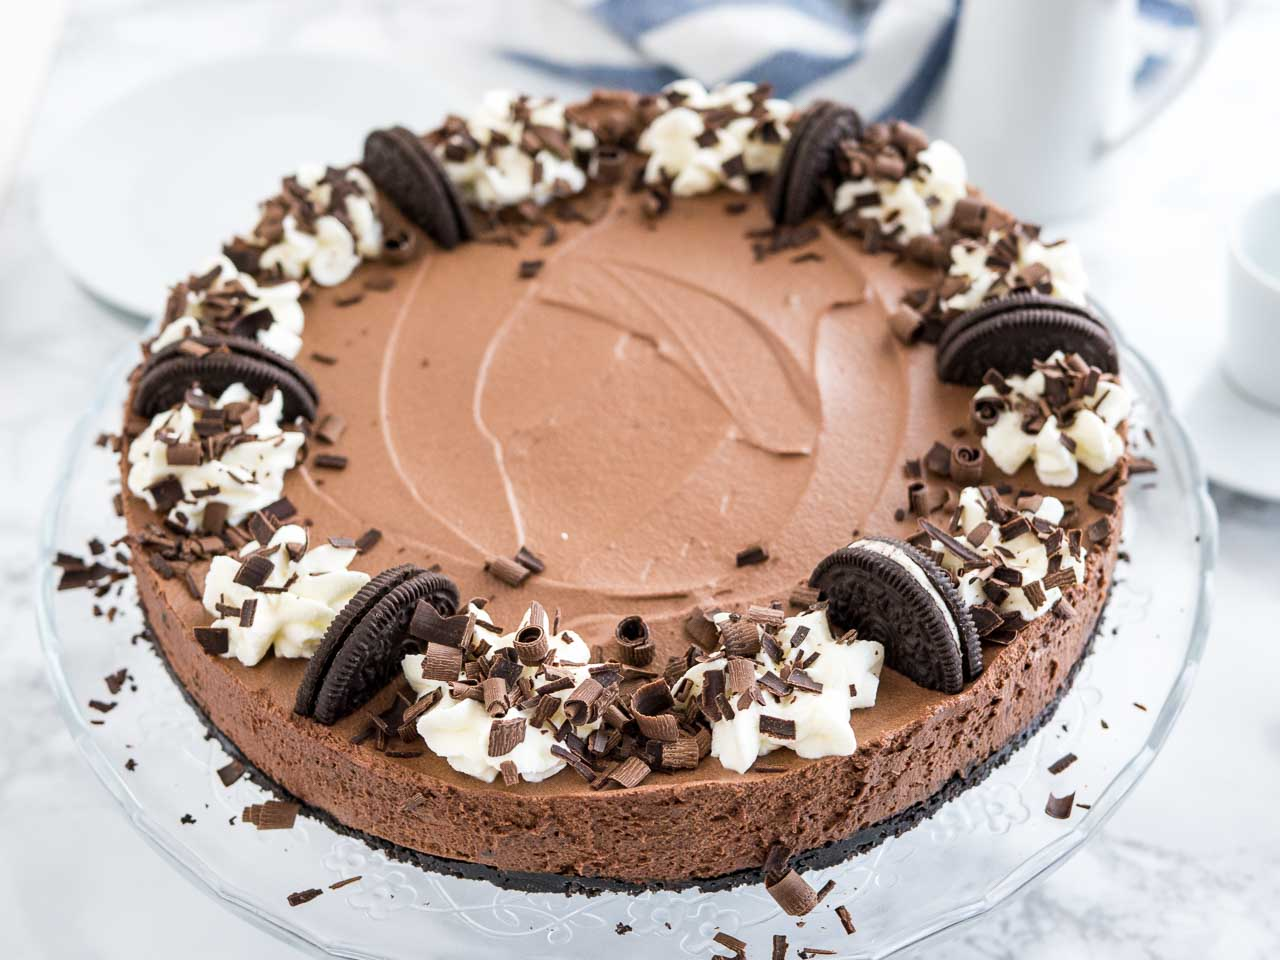 Chocolate Mousse Cake is every chocolate lovers dream! An Oreo crust filled with a decadent dark chocolate mousse topped with more Oreos, whipped cream, and chocolate. This no-bake dessert is perfect for special occasions but so easy to make from scratch!